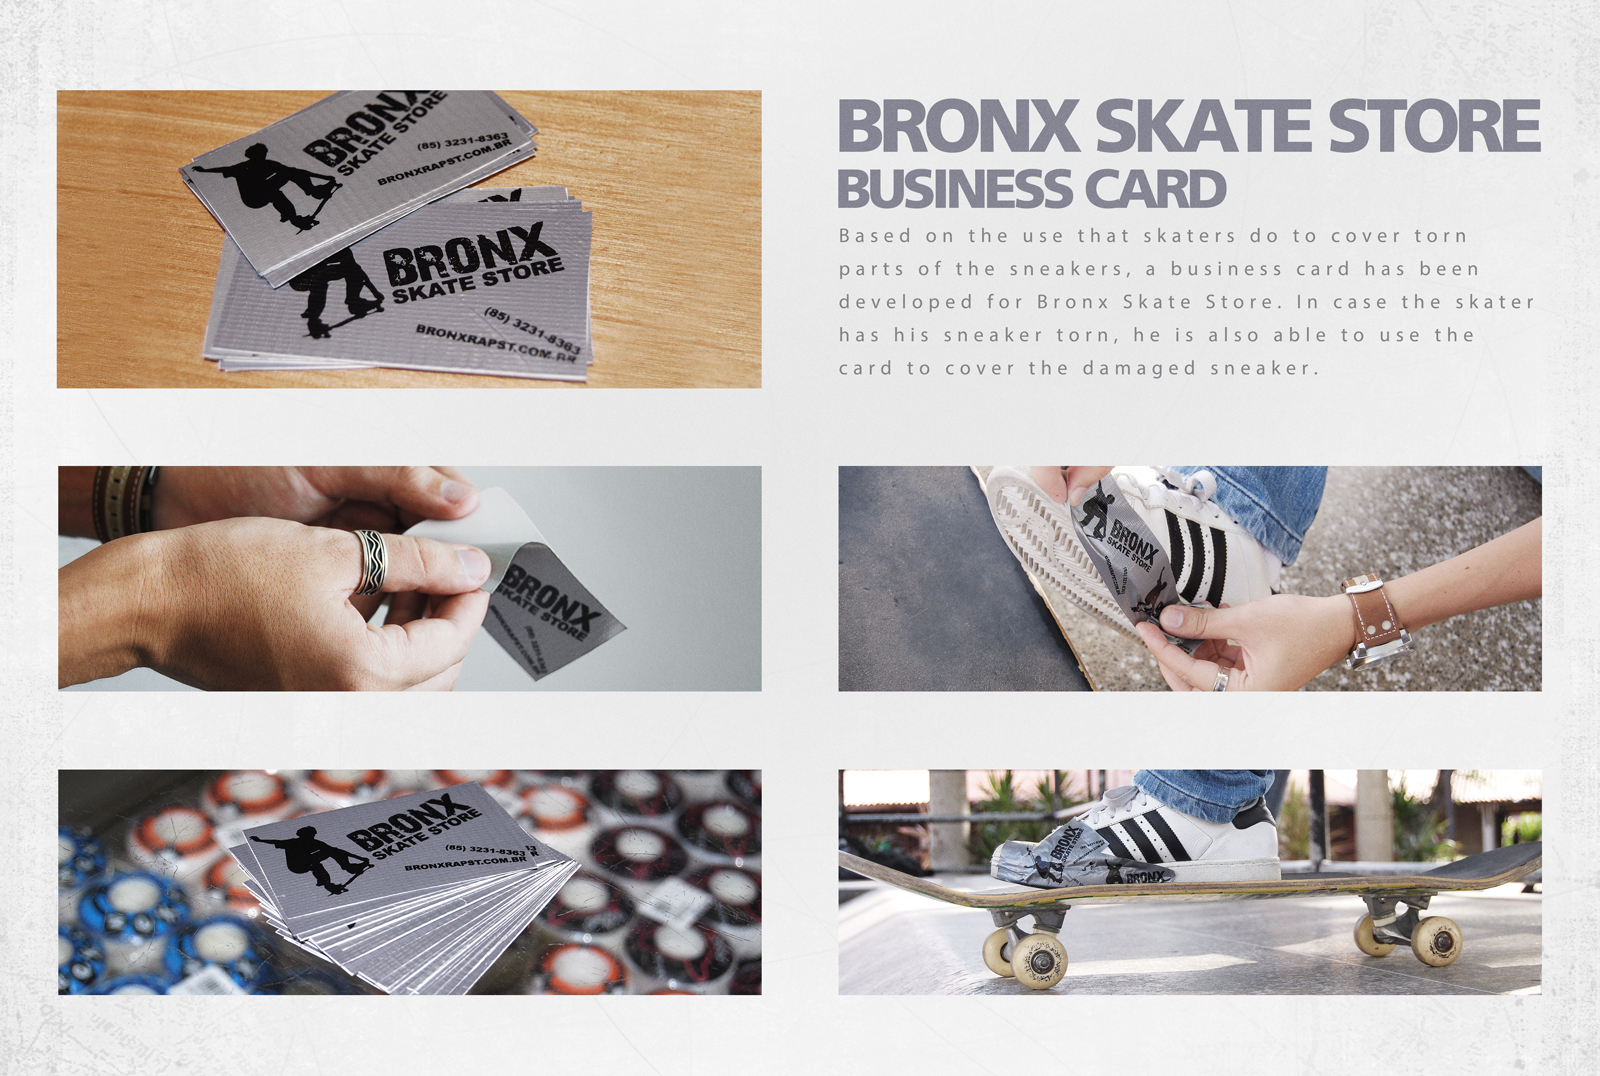 Bronx Skate Store: Business card | AdPitch Blog